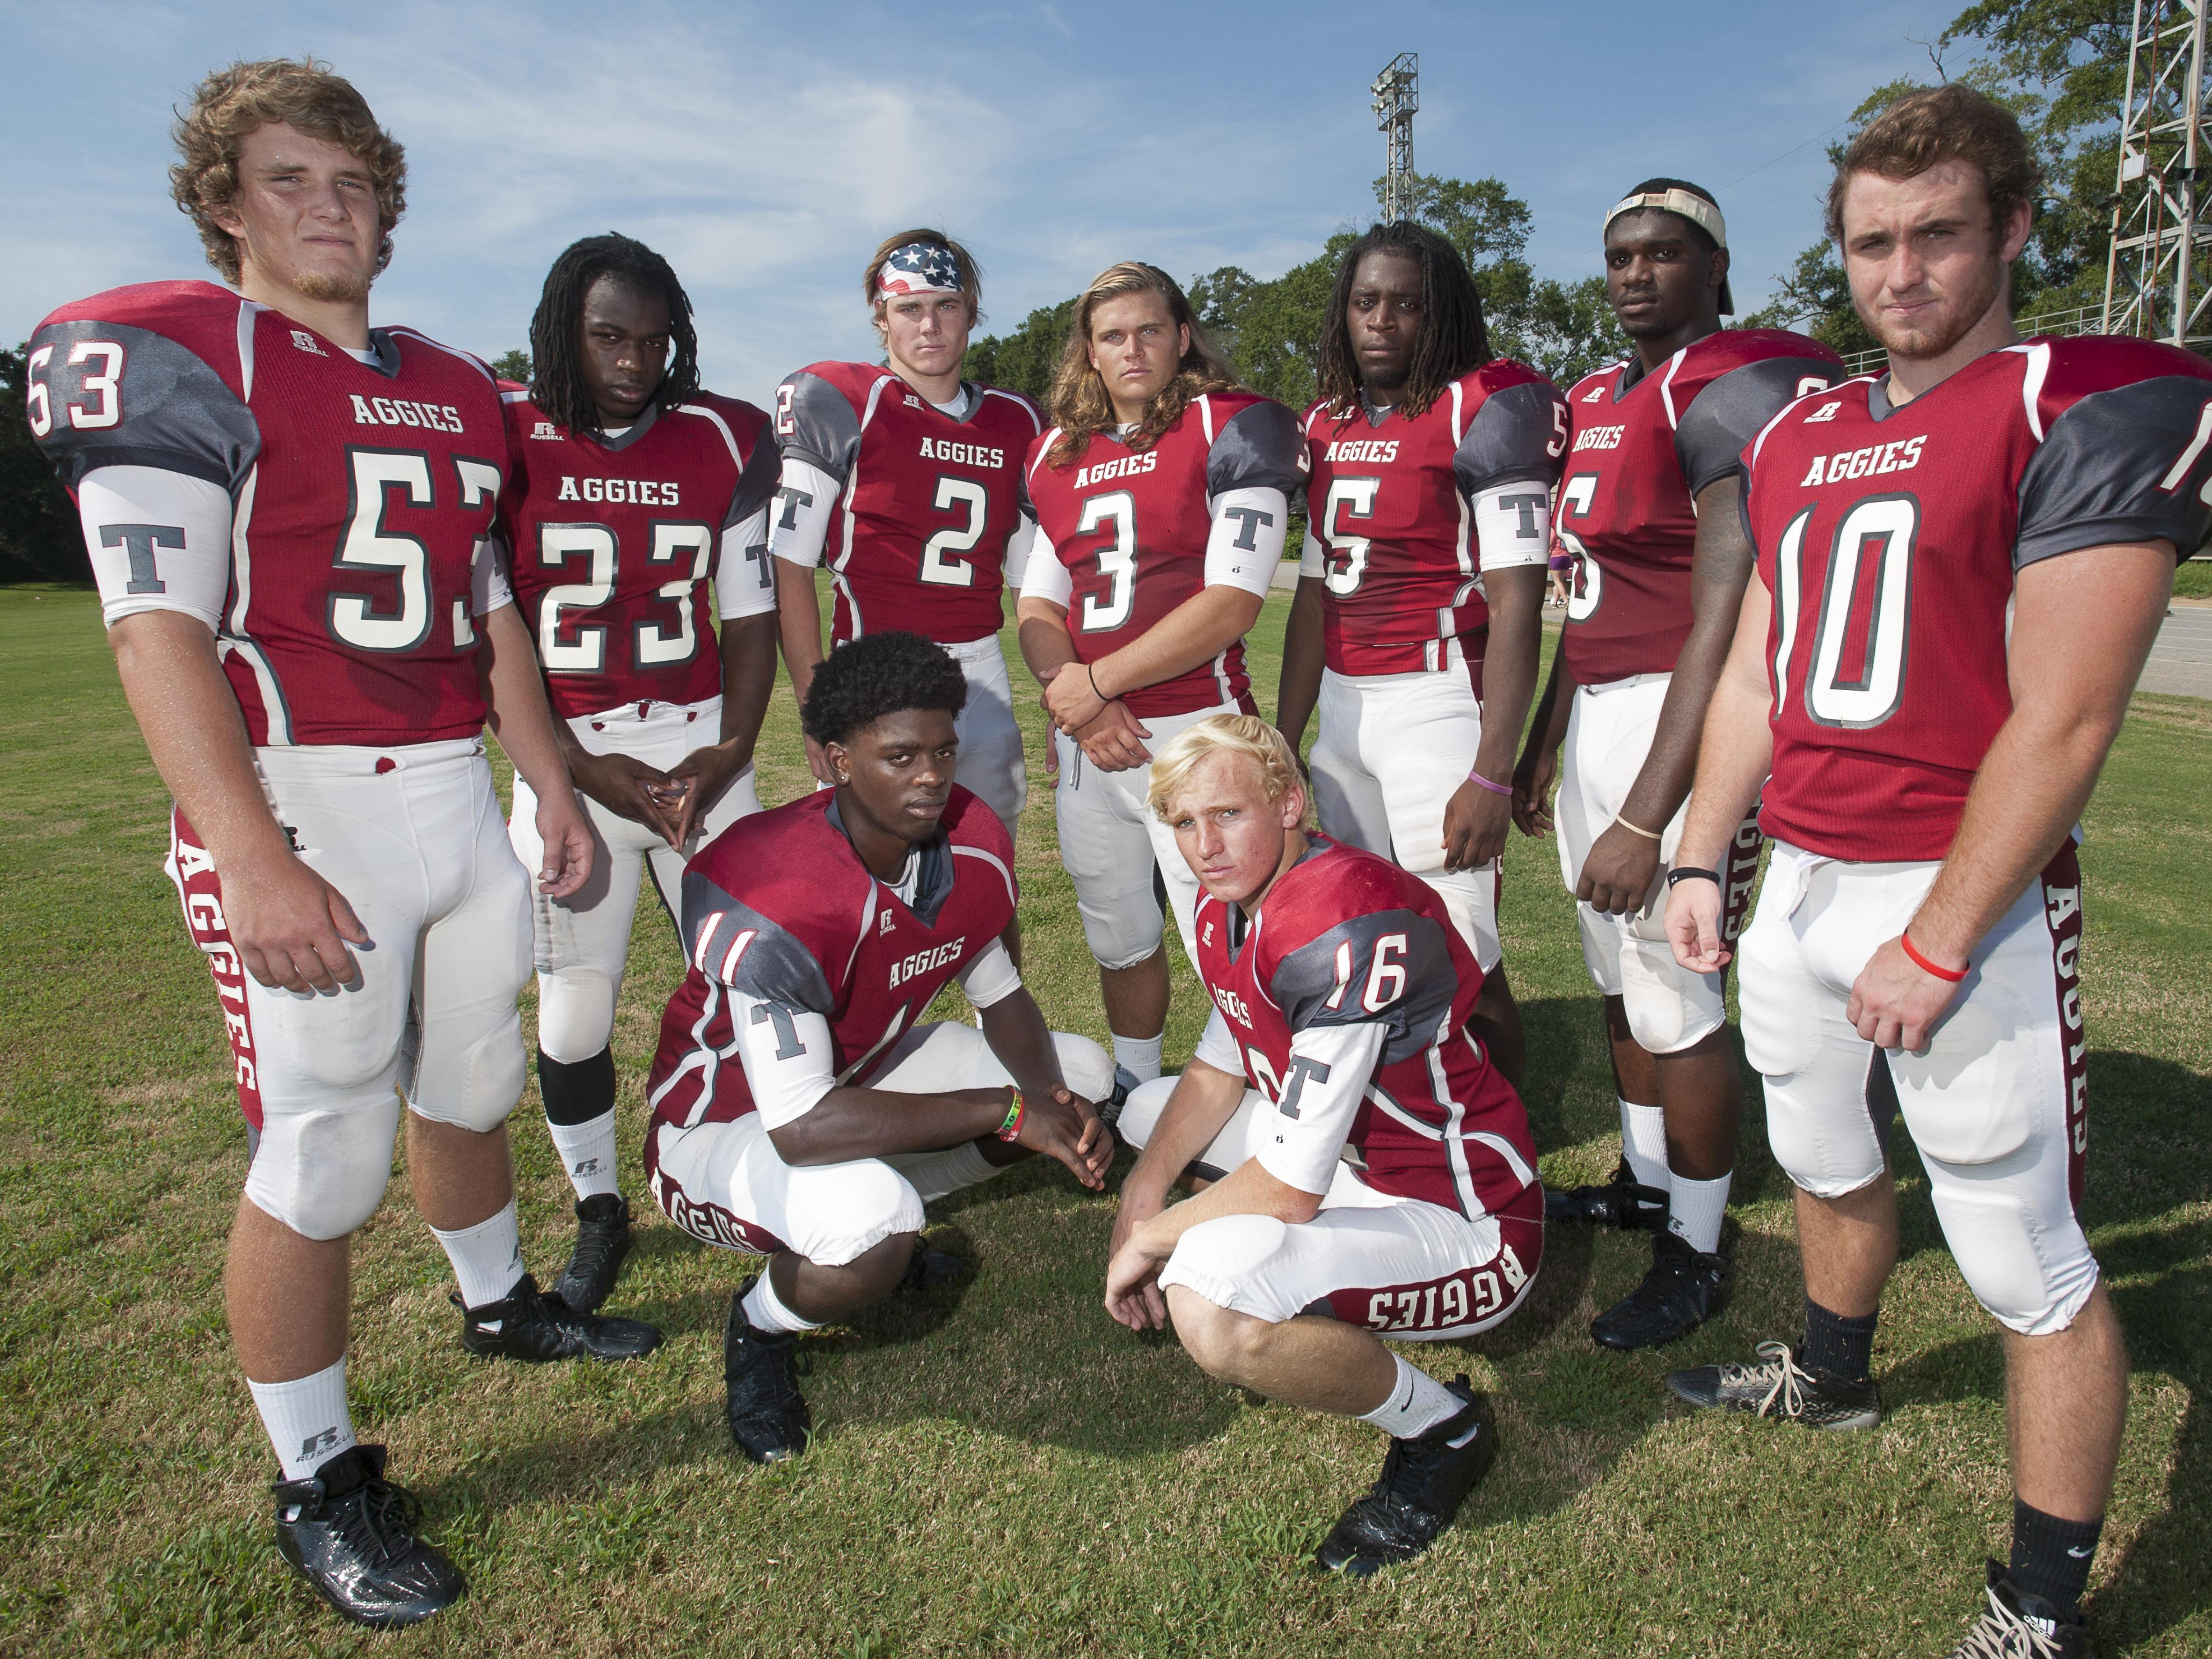 Tate High School will find its strength in its returning players (from left): Gaven McAnally (53), Alondo Thompkins (23), Reggie Payne (11), Sawyer Smith (2), Dallas Ditto (3), Jake Henry (16), Alonte Thompson (5), Dee Thompson (6), and Trace Penton (10).